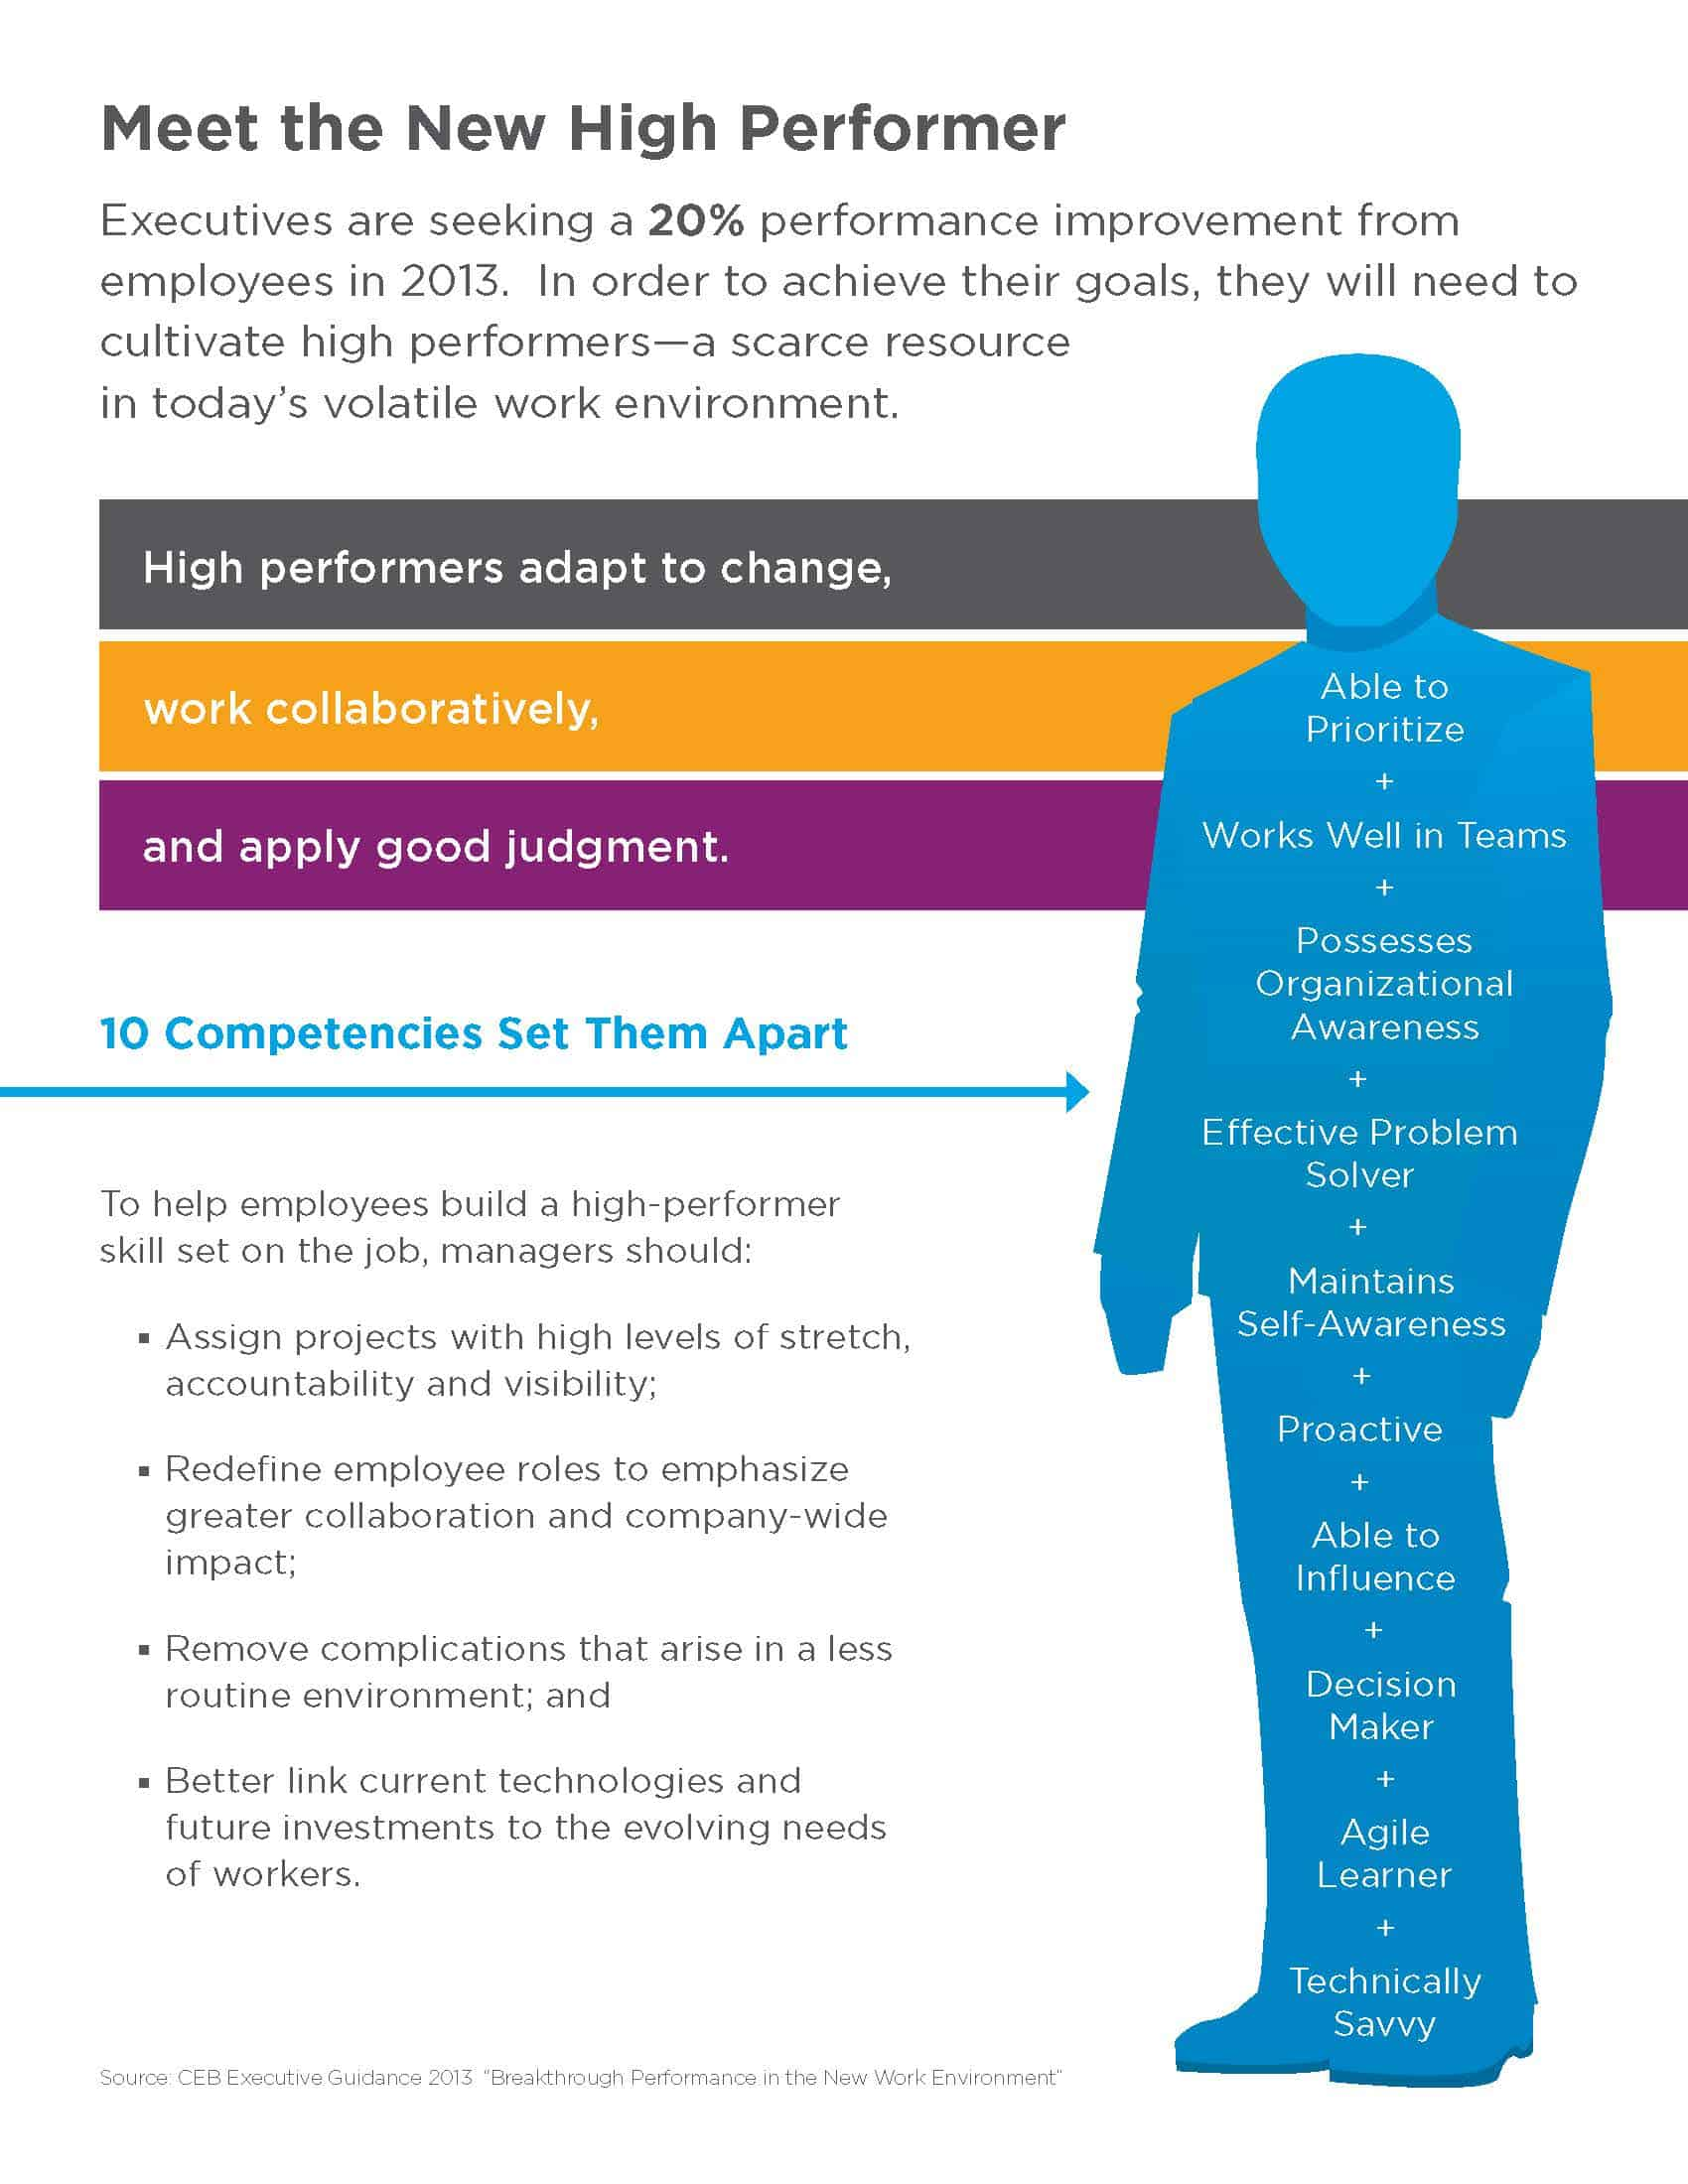 What does a High Performer Look Like?